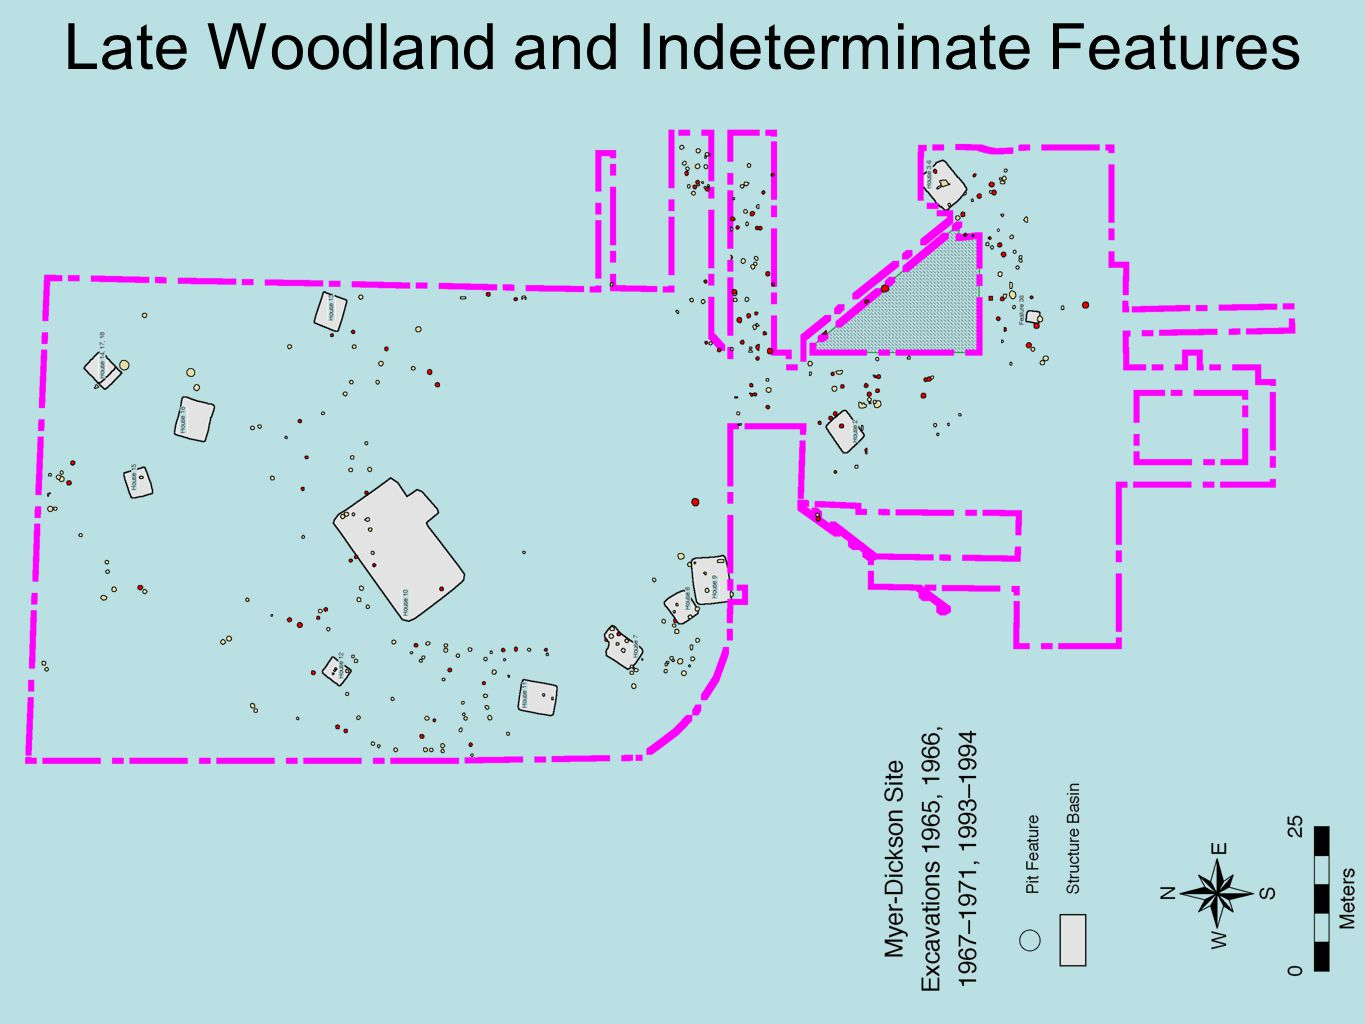 Late Woodland and Indeterminate Features